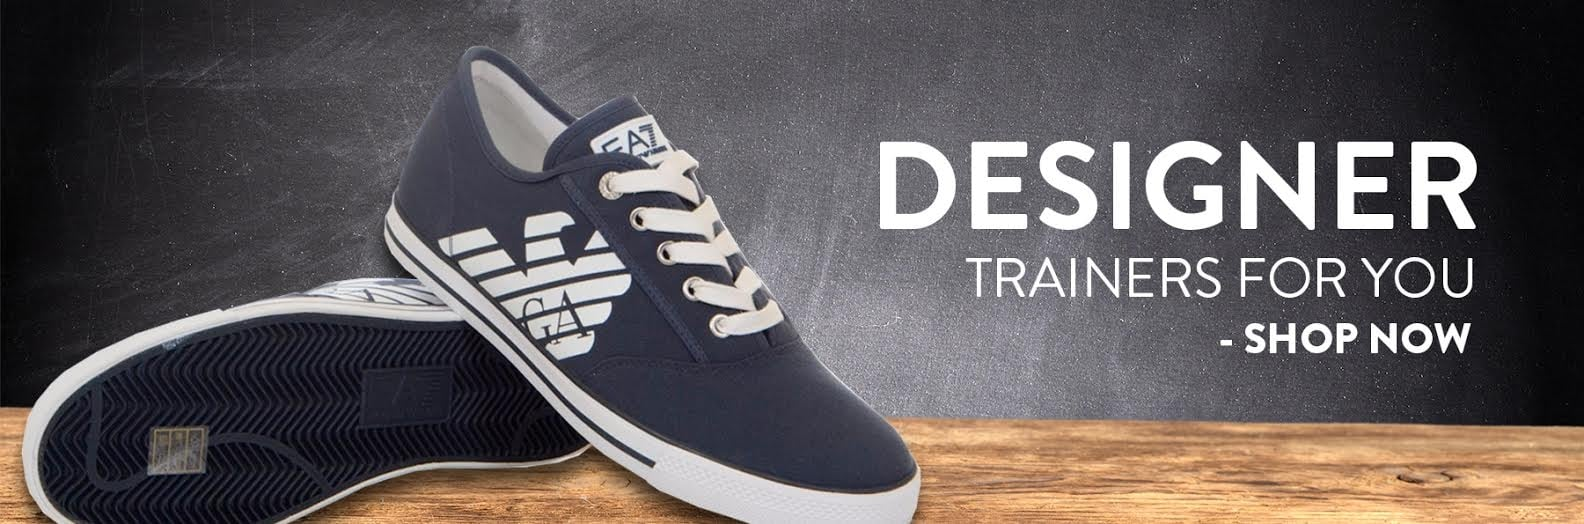 Designer Trainers for You